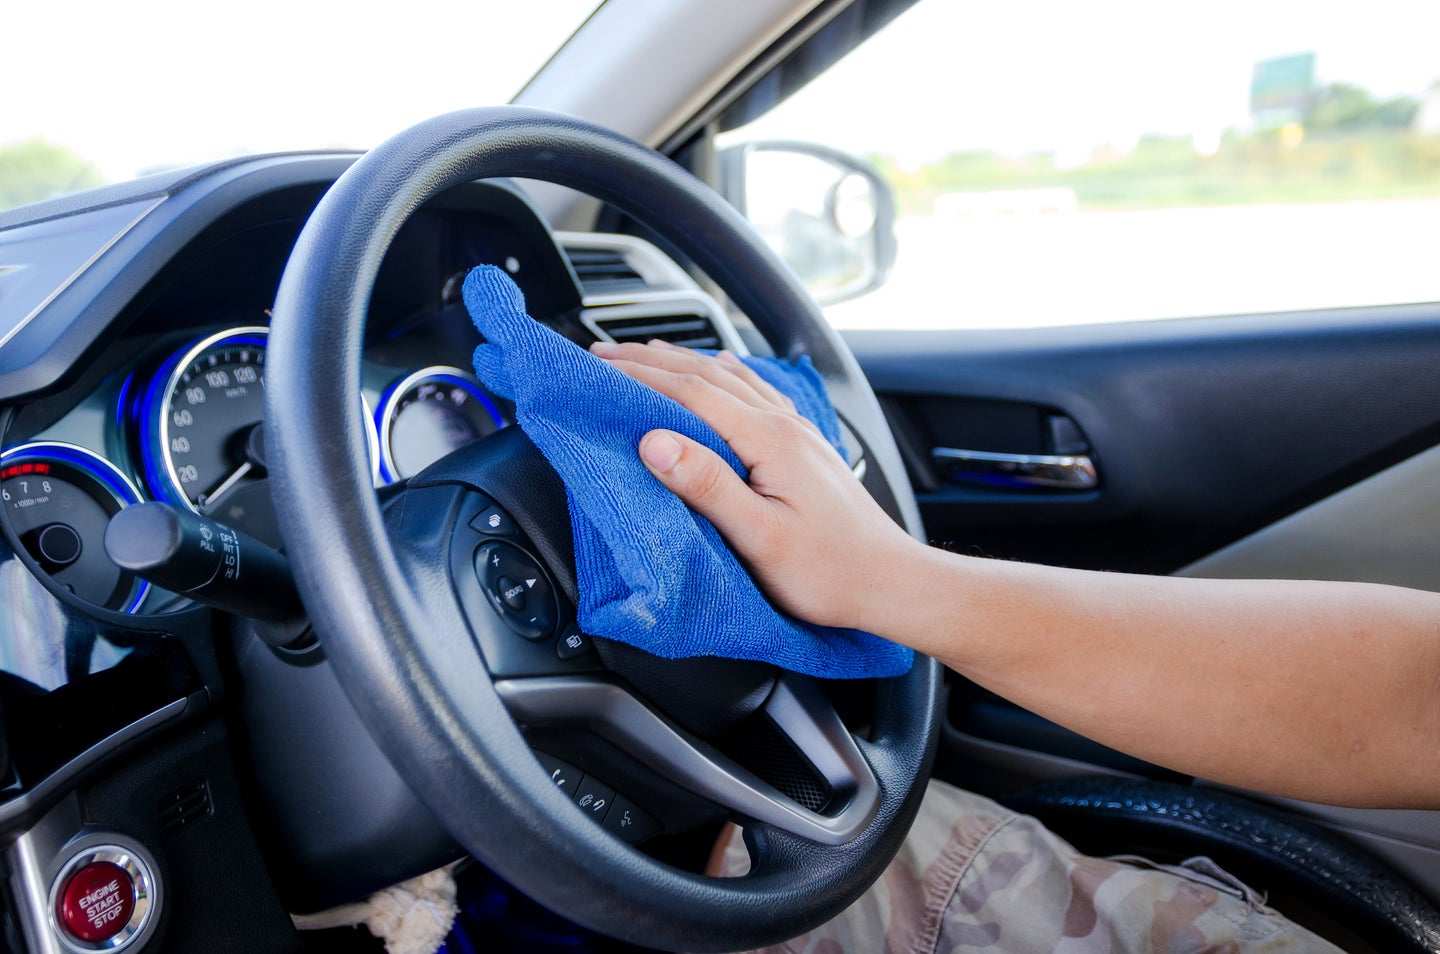 Car steering wheel being cleaned with a wipe.